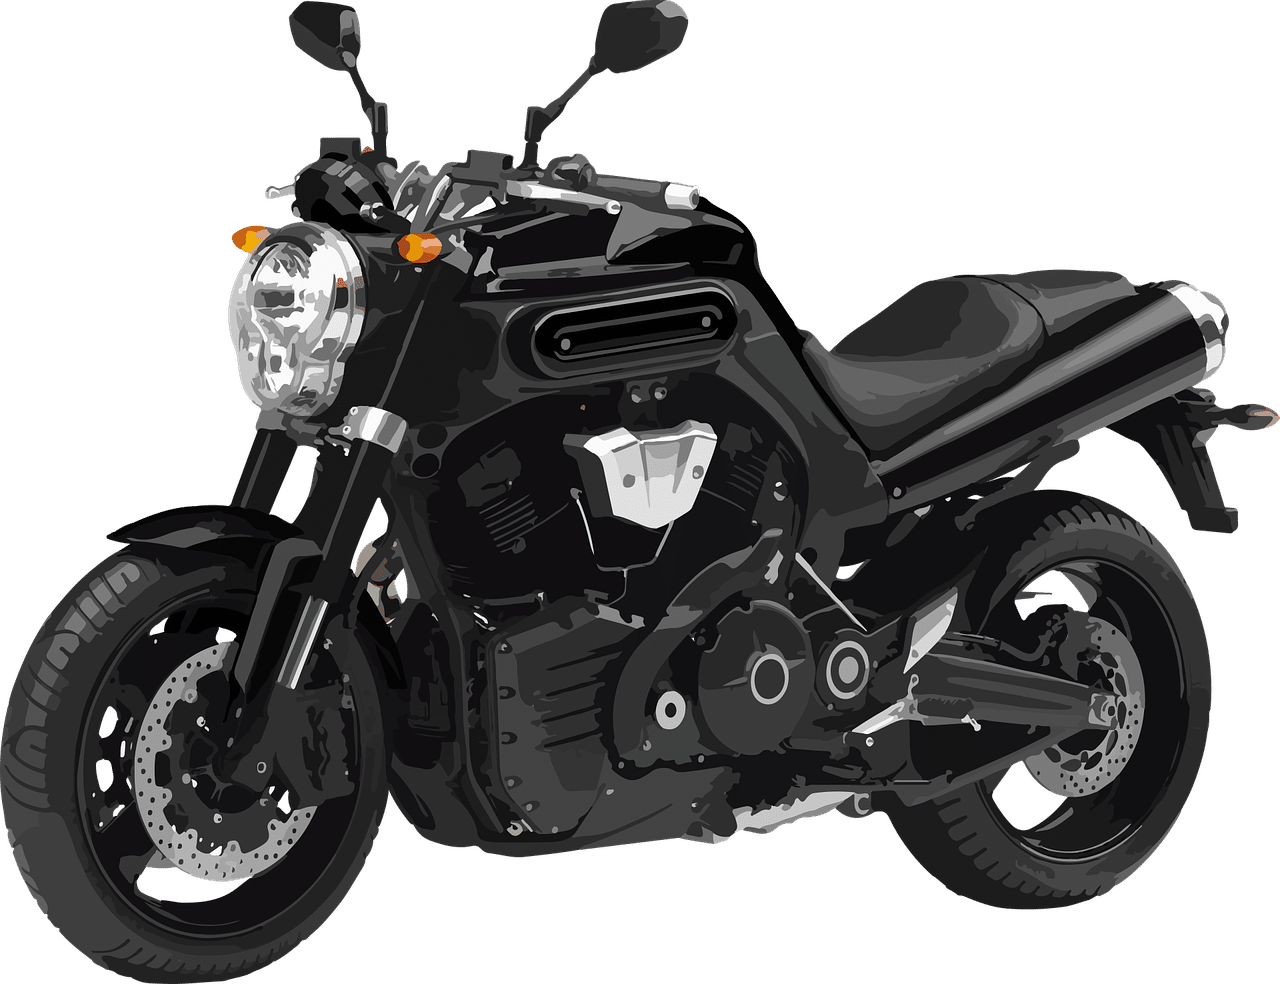 Choosing the Right Partner for Moving Autos, Boats and Motorcycles